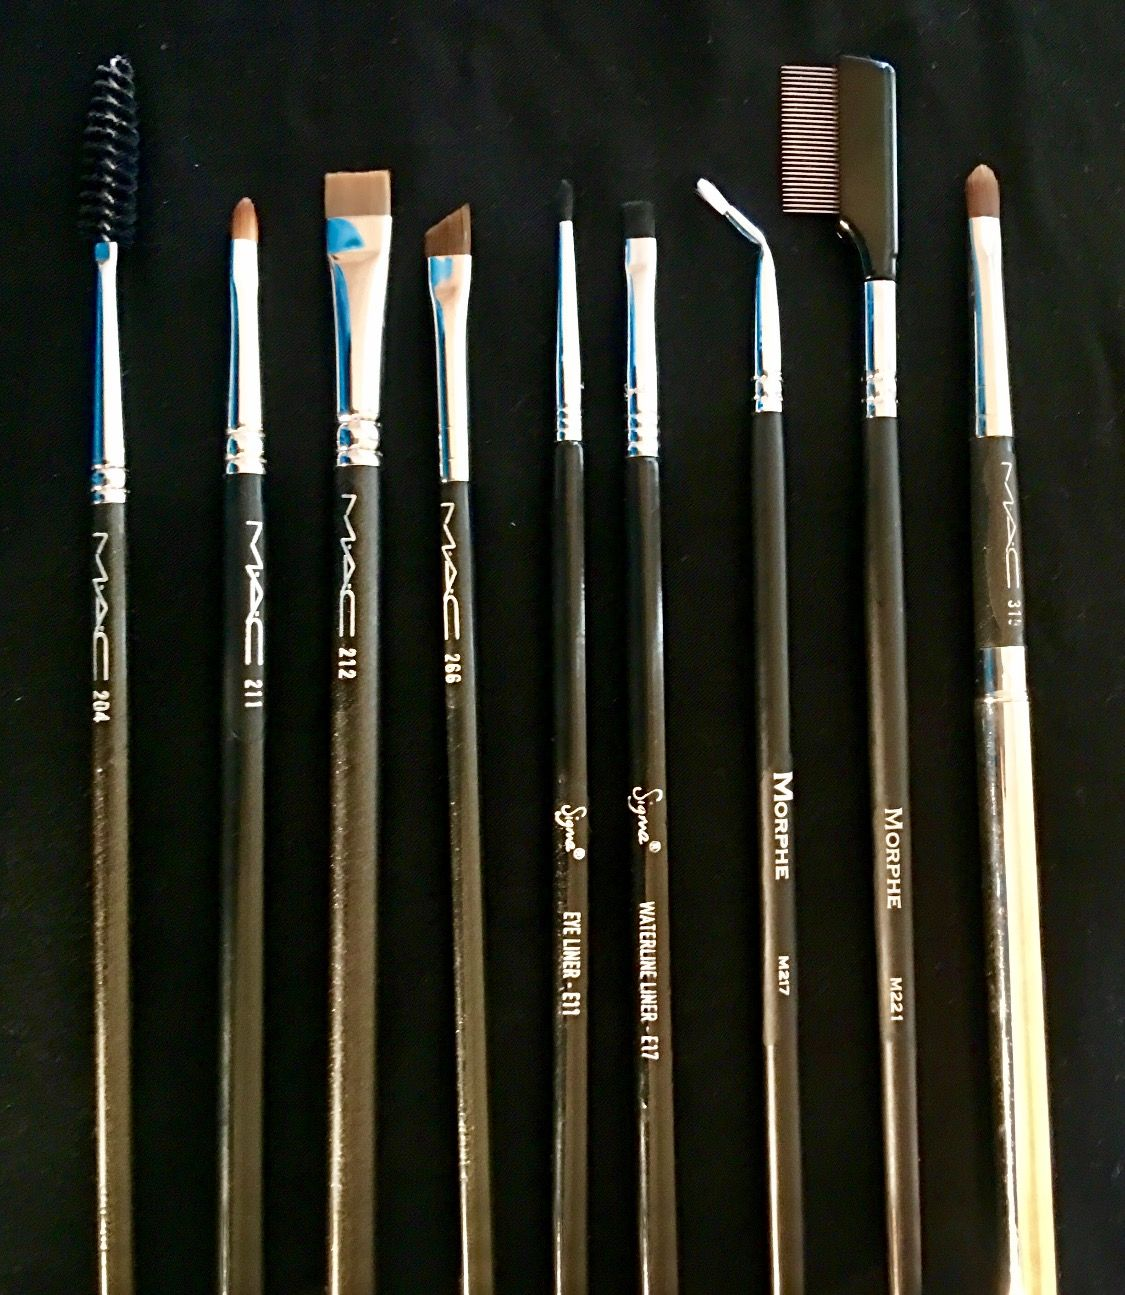 mac lip brush. eyebrows/eyeliners/lip brushes (9) mac 204 lashes, 211 pointed mac lip brush